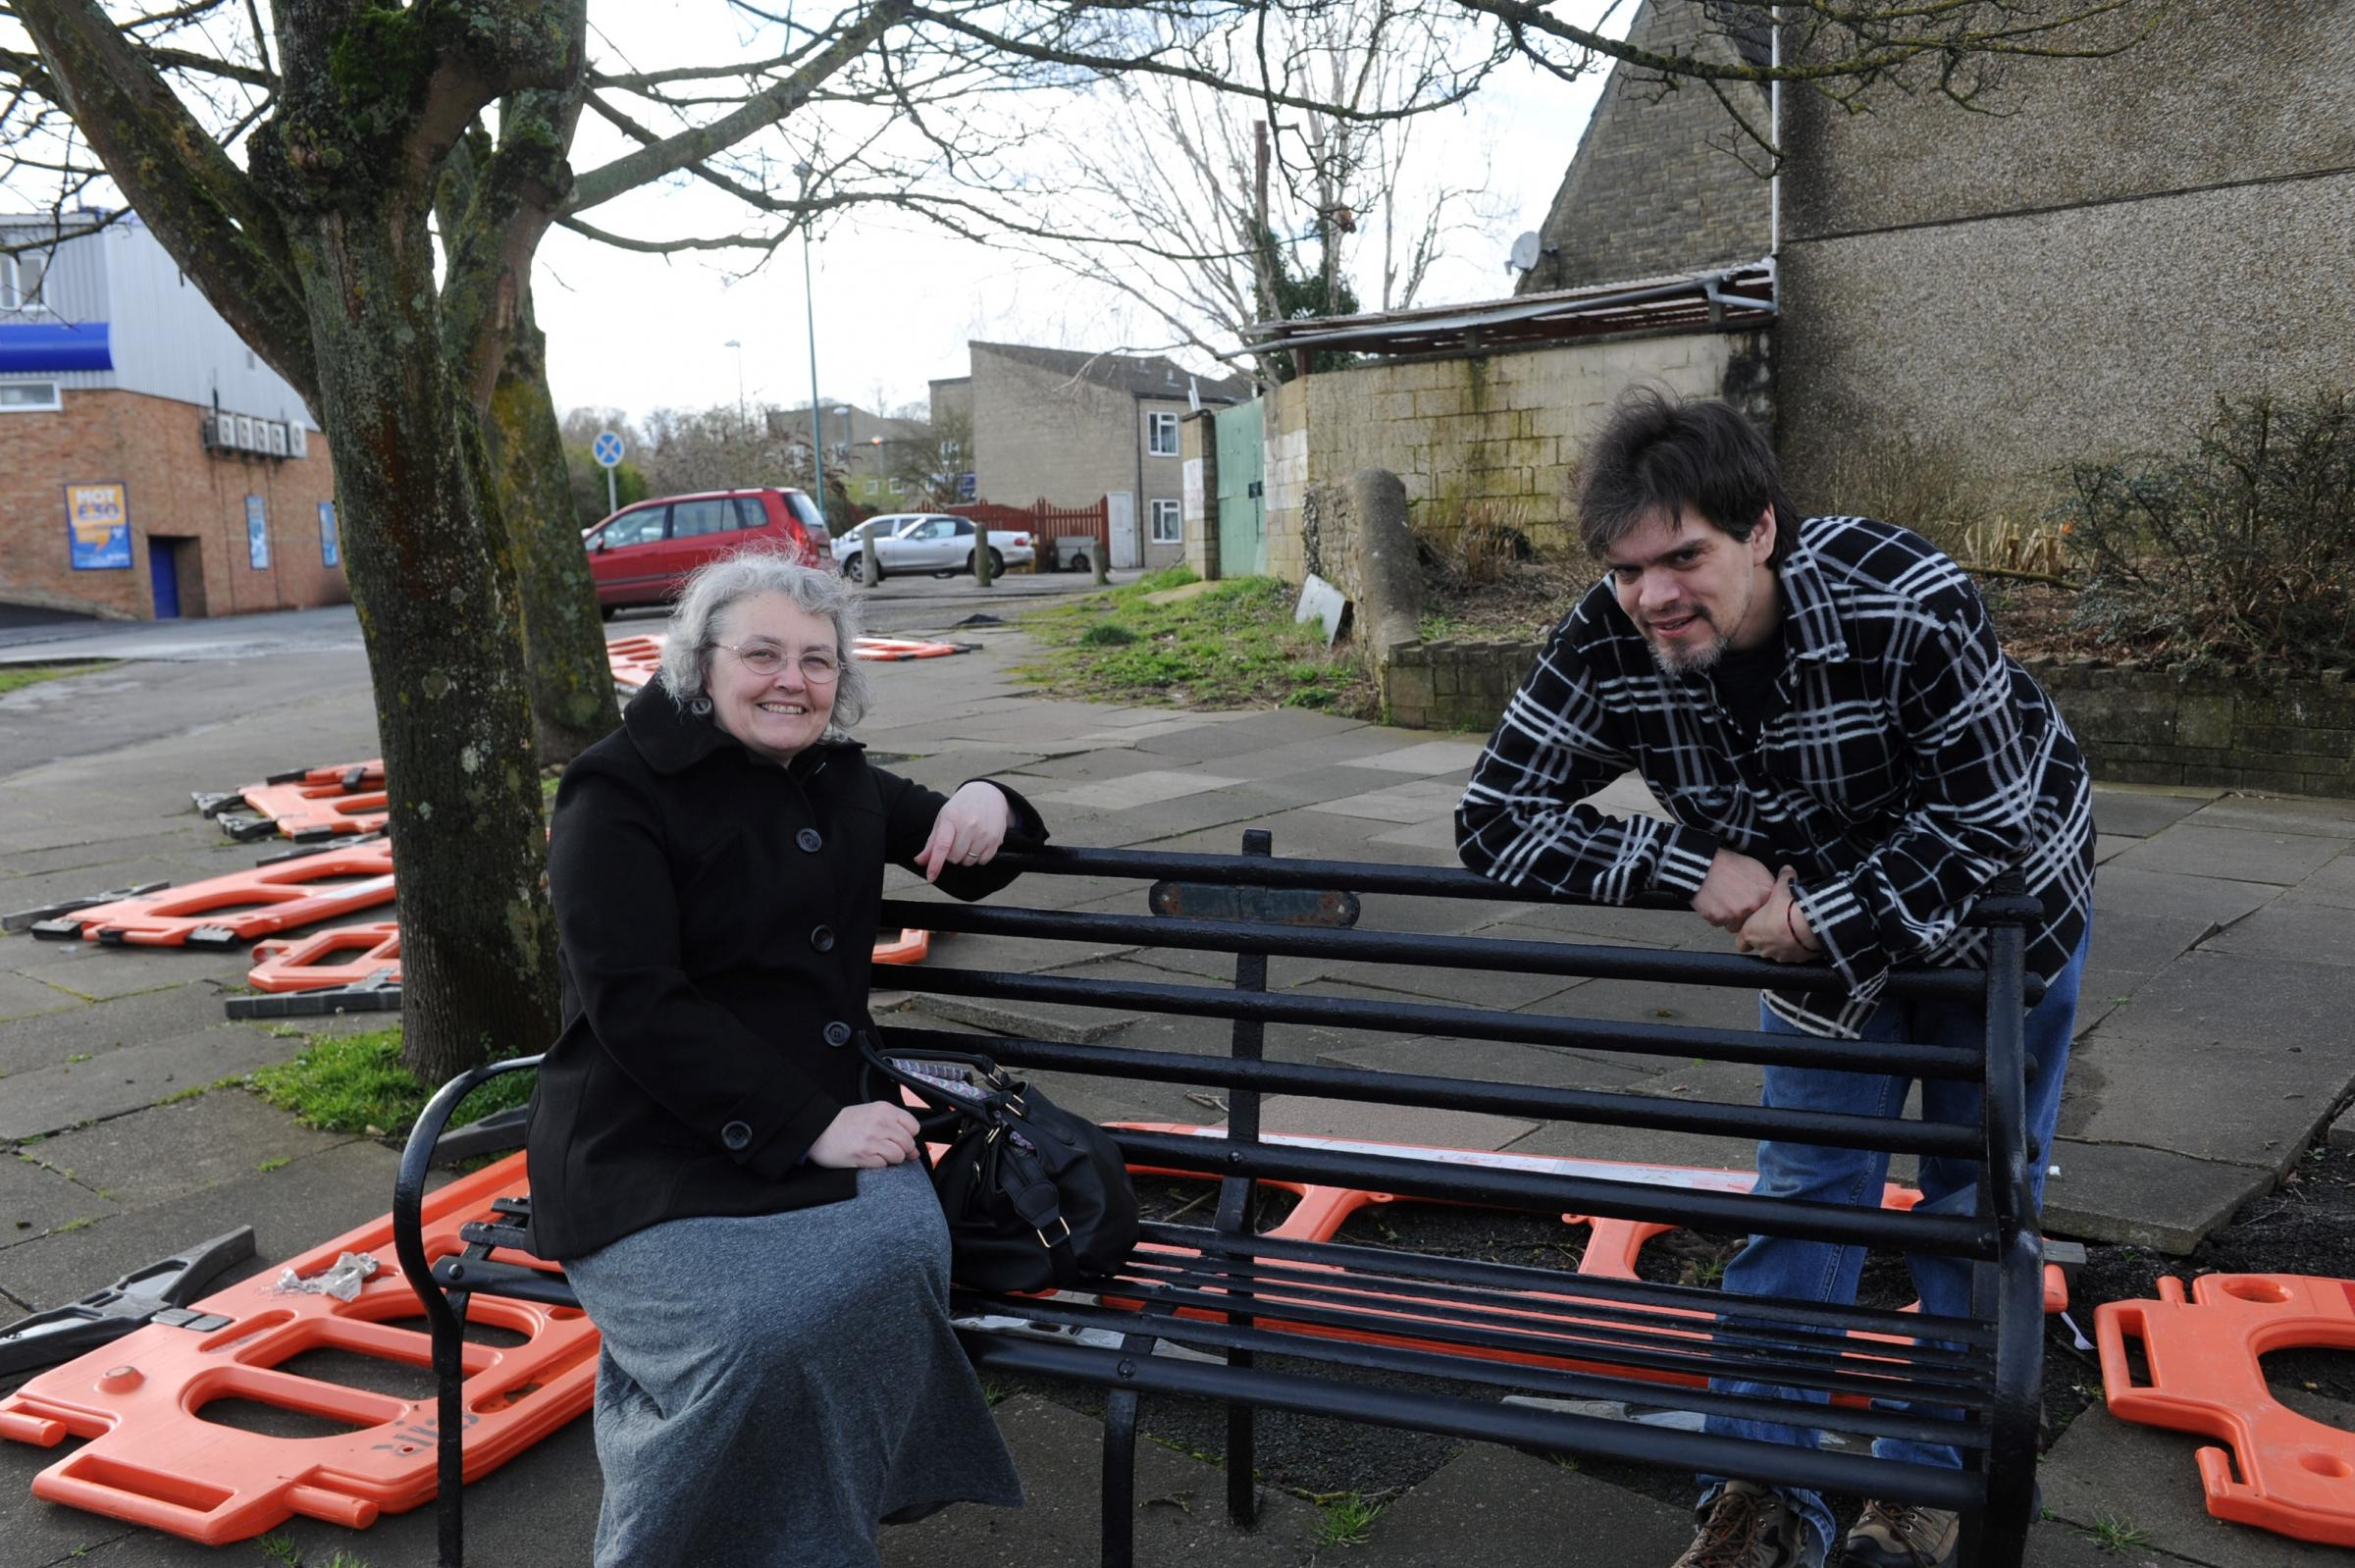 Cllrs Jenny Hincks and Shane Poole by the area due for landscaping in Watermoor Road